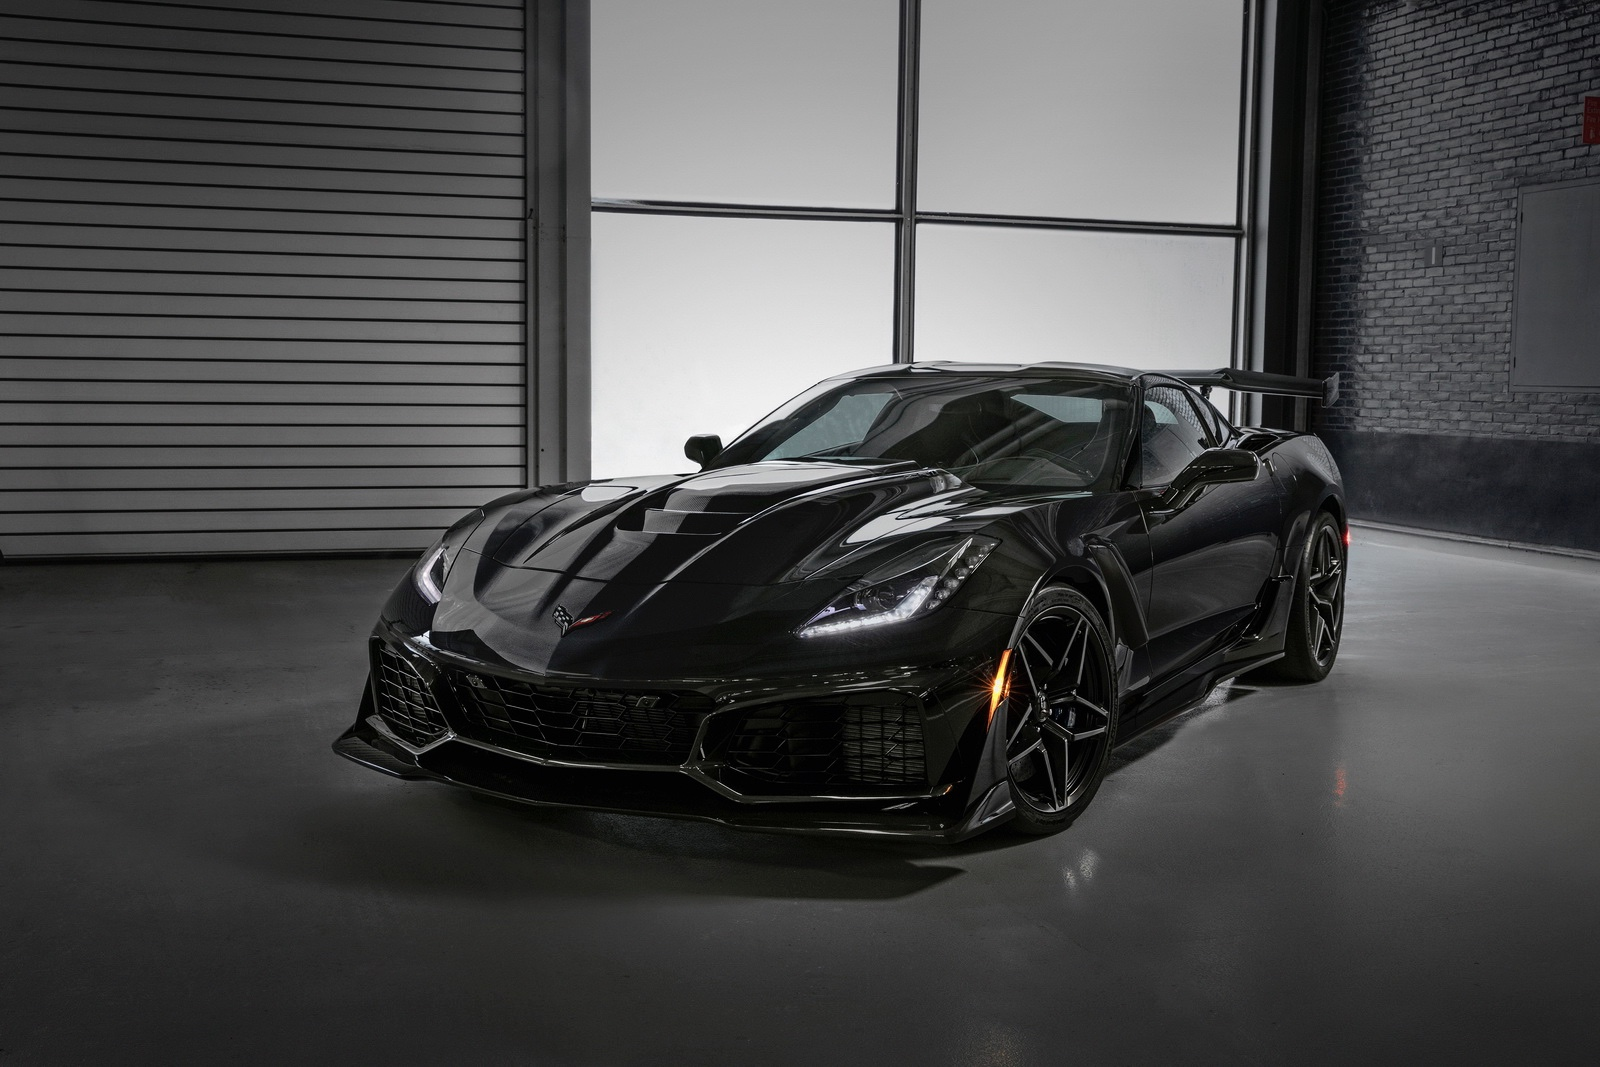 Codename, Corvette ZR1 , ZR1, BAS, LT5, Chevrolet, Automotive, Cars,SXdrv,